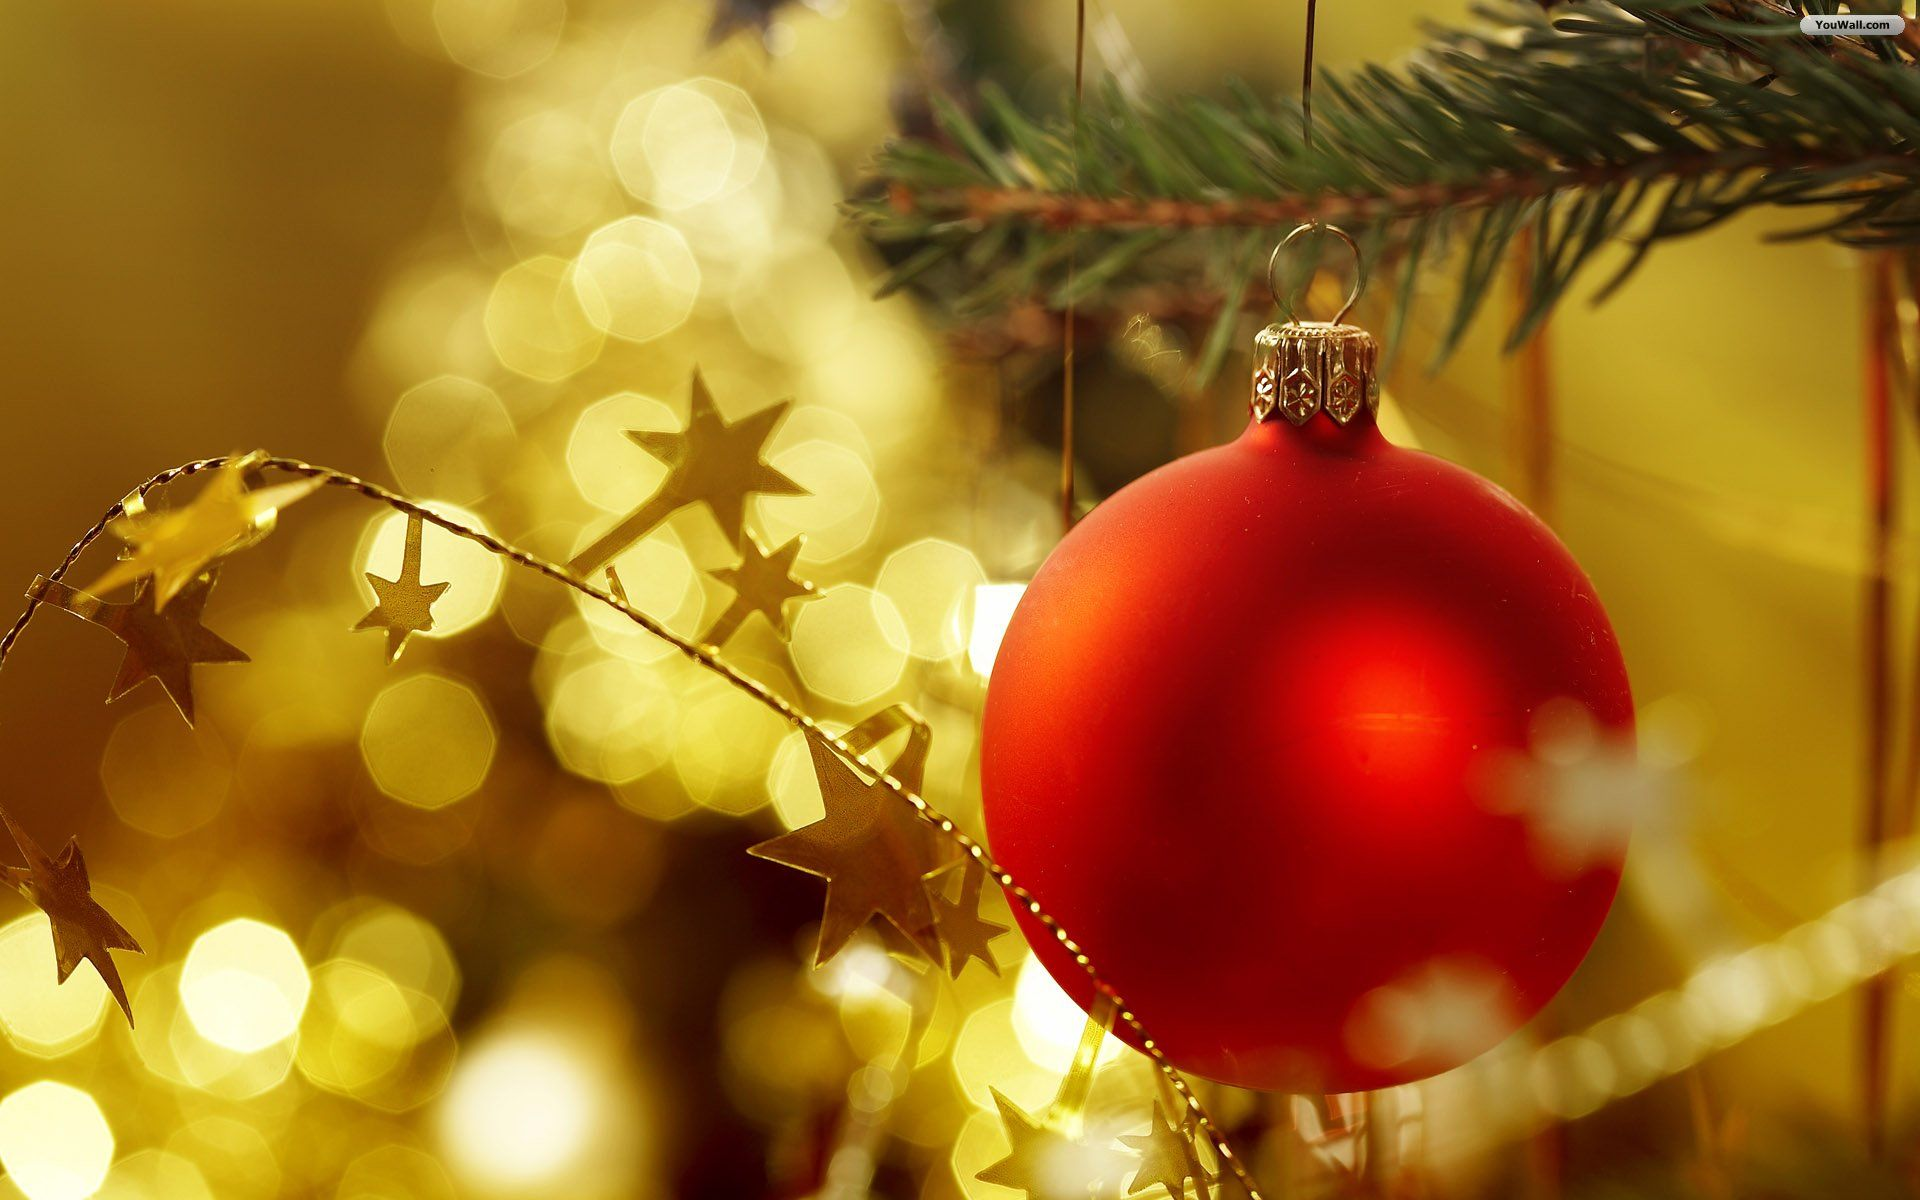 1920x1200 Christmas Ornament HD Desktop Wallpaper | HD Desktop Wallpaper